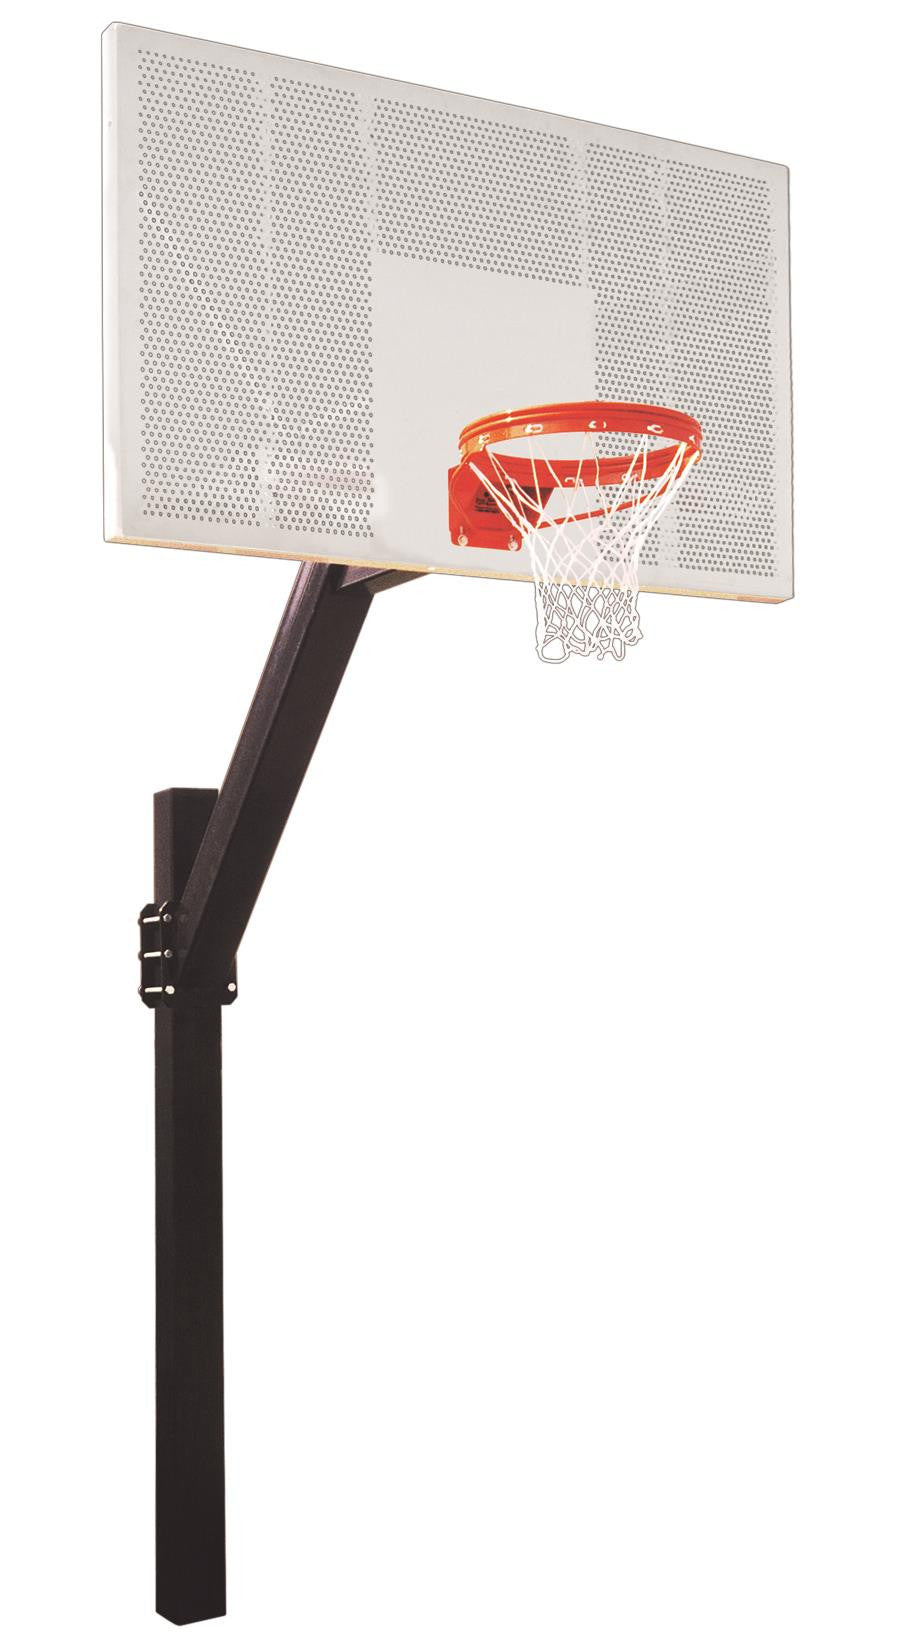 First Team Legend Intensity In Ground Fixed Height Outdoor Basketball Hoop 72 inch Perforated Aluminum